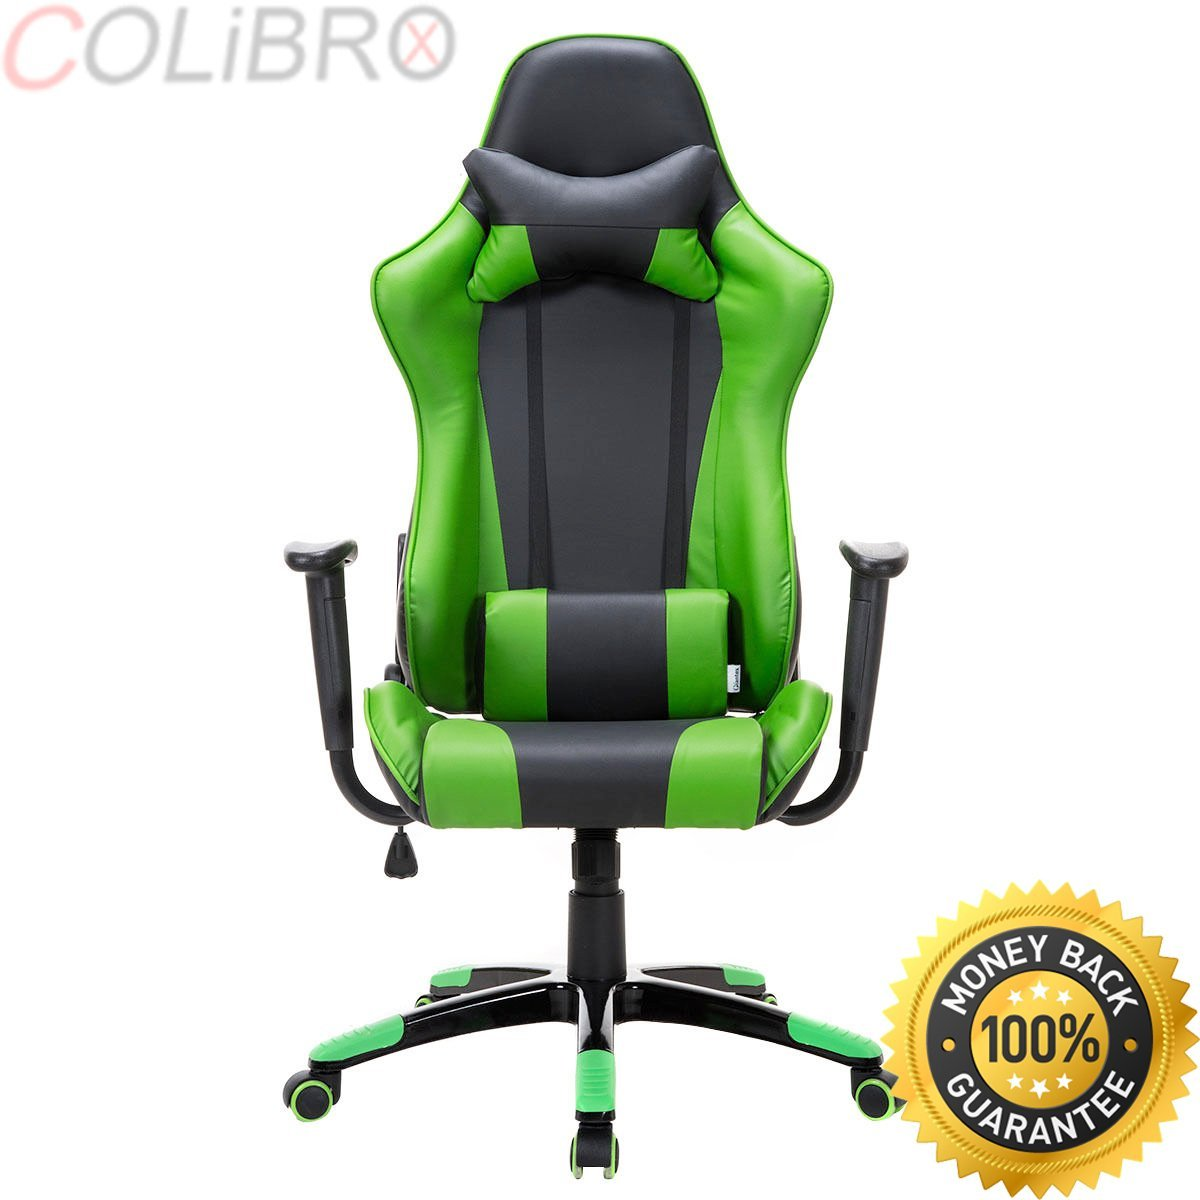 Cheap Reclining Computer Workstation Find Reclining Computer Workstation Deals On Line At Alibaba Com